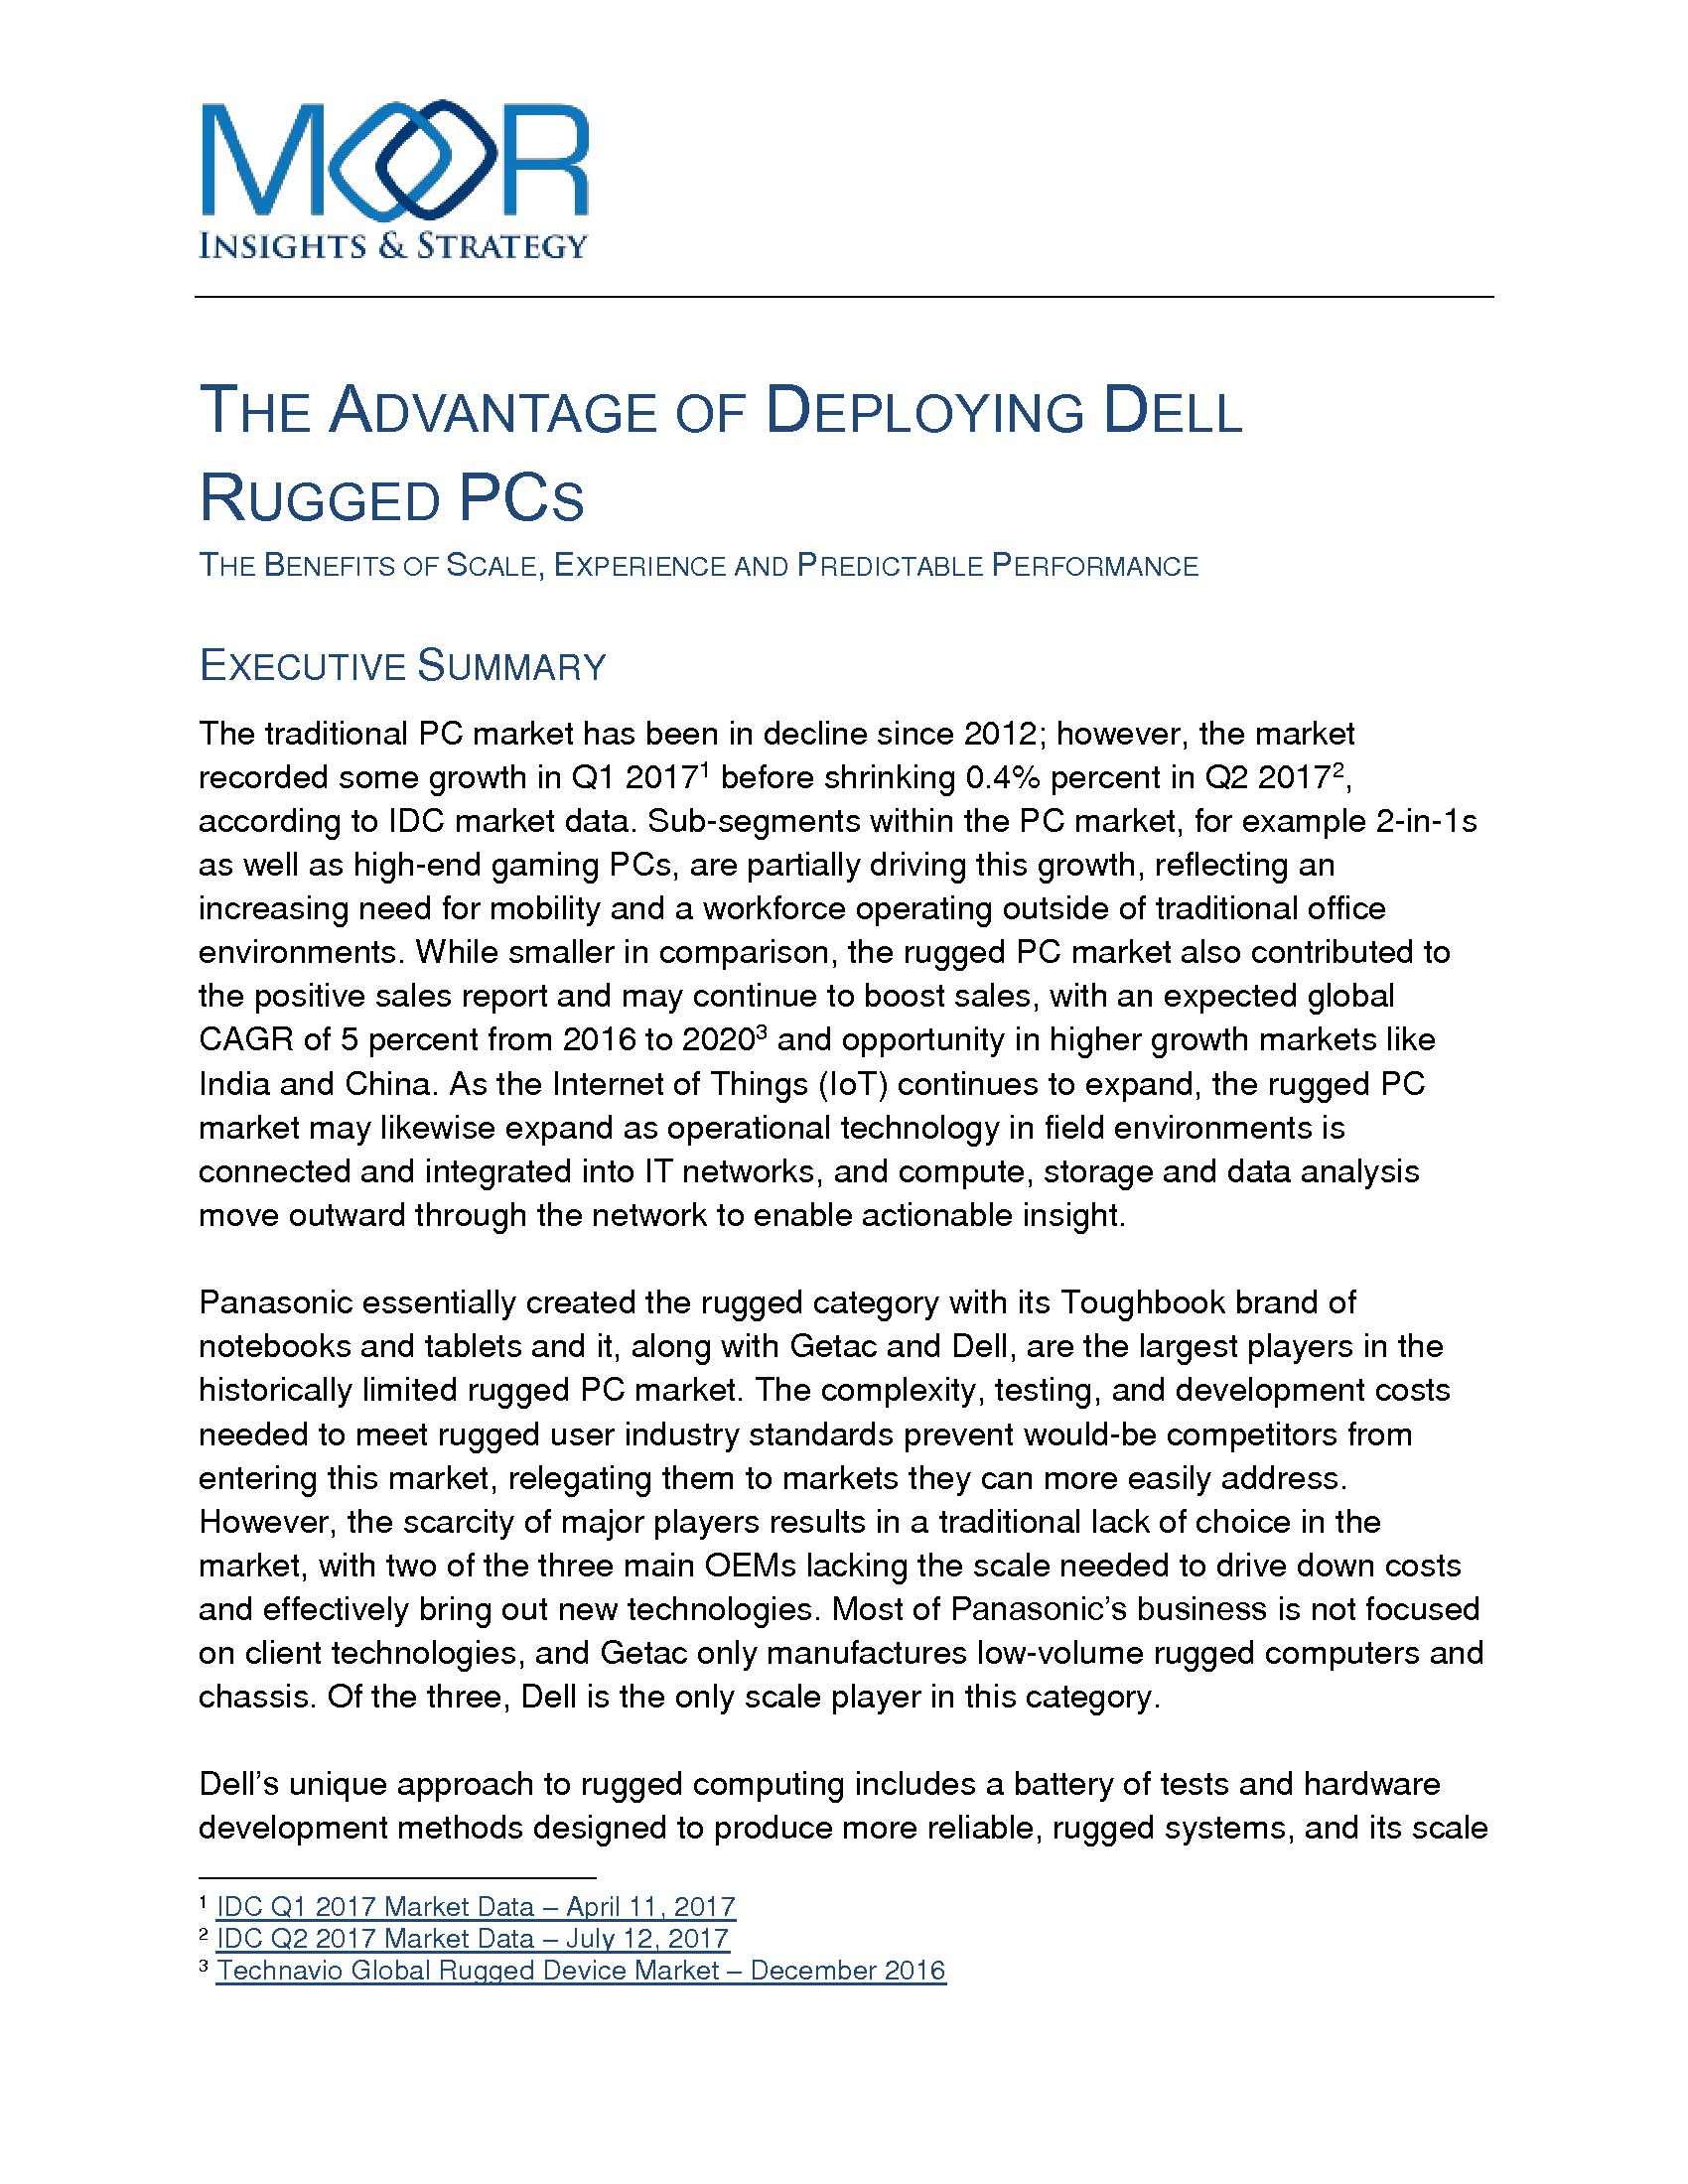 GT - Dell - Client Supplied - 180731 - Deploying Dell Rugged PCs